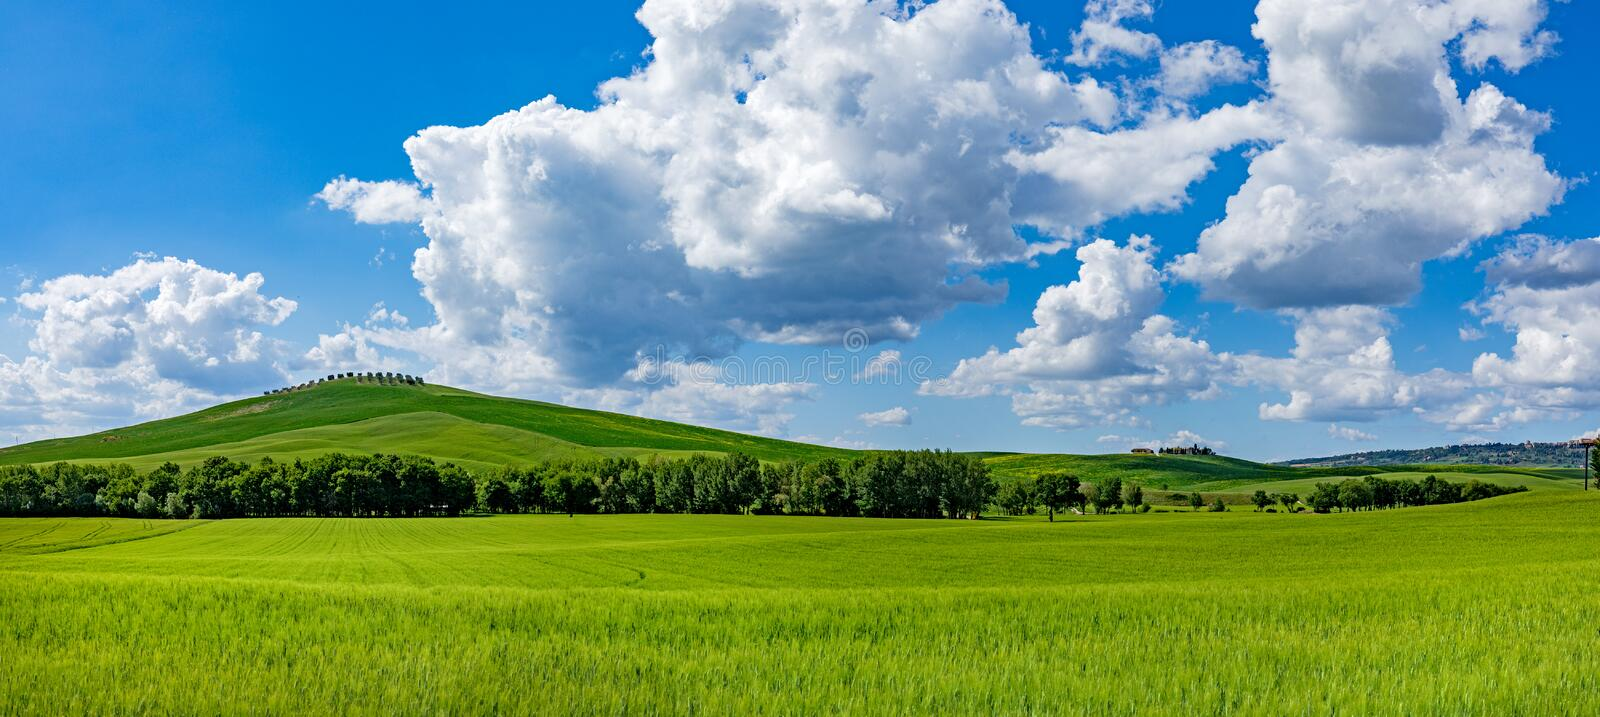 Tuscany spring, rolling hills on spring . Rural landscape. Green fields and farmlands. Italy, Europe royalty free stock images